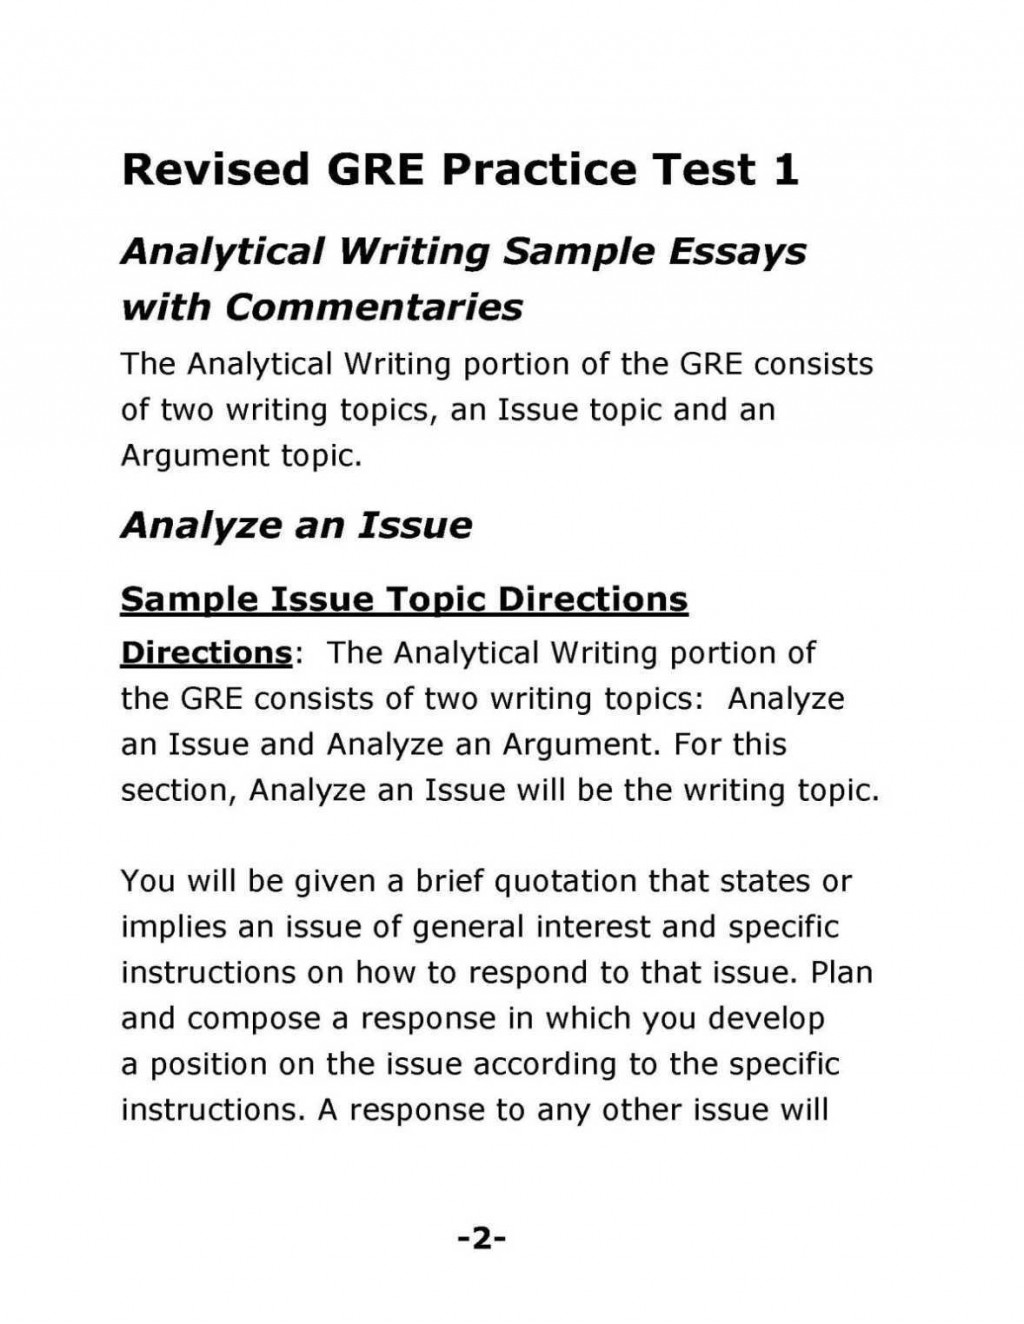 003 How To Write Gre Essay Example Online Helper Get Your Task Done By Pro Analysis Of An Sample Test Papers With Soluti Essays For Analytical Stunning A Issue Great Writing Large